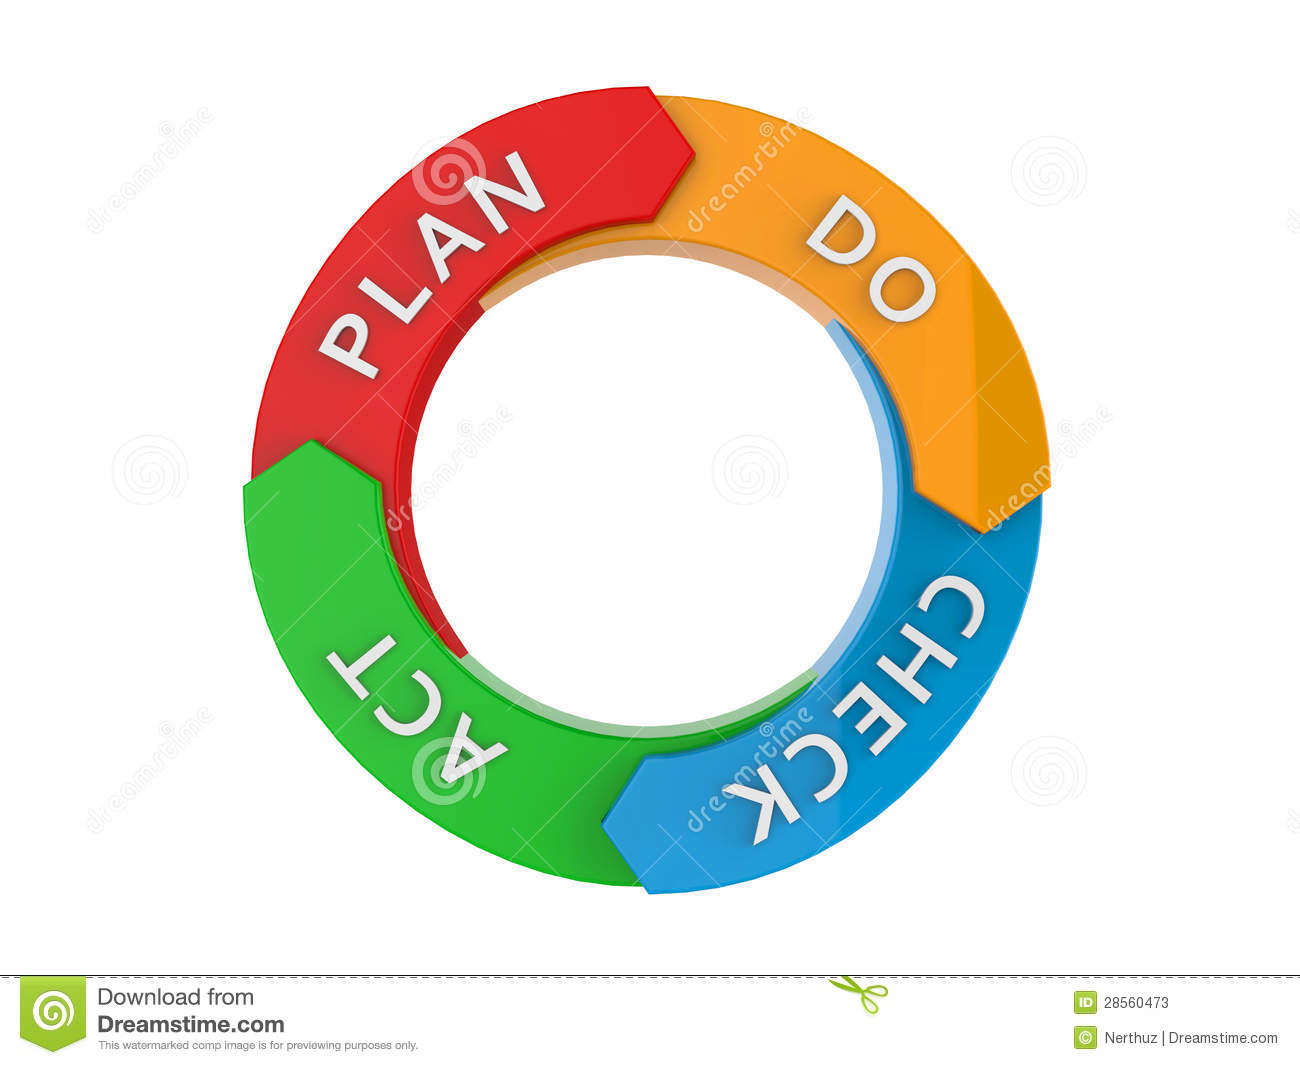 No Credit Check Credit Cards >> PDCA Cycle Stock Photos - Image: 28560473